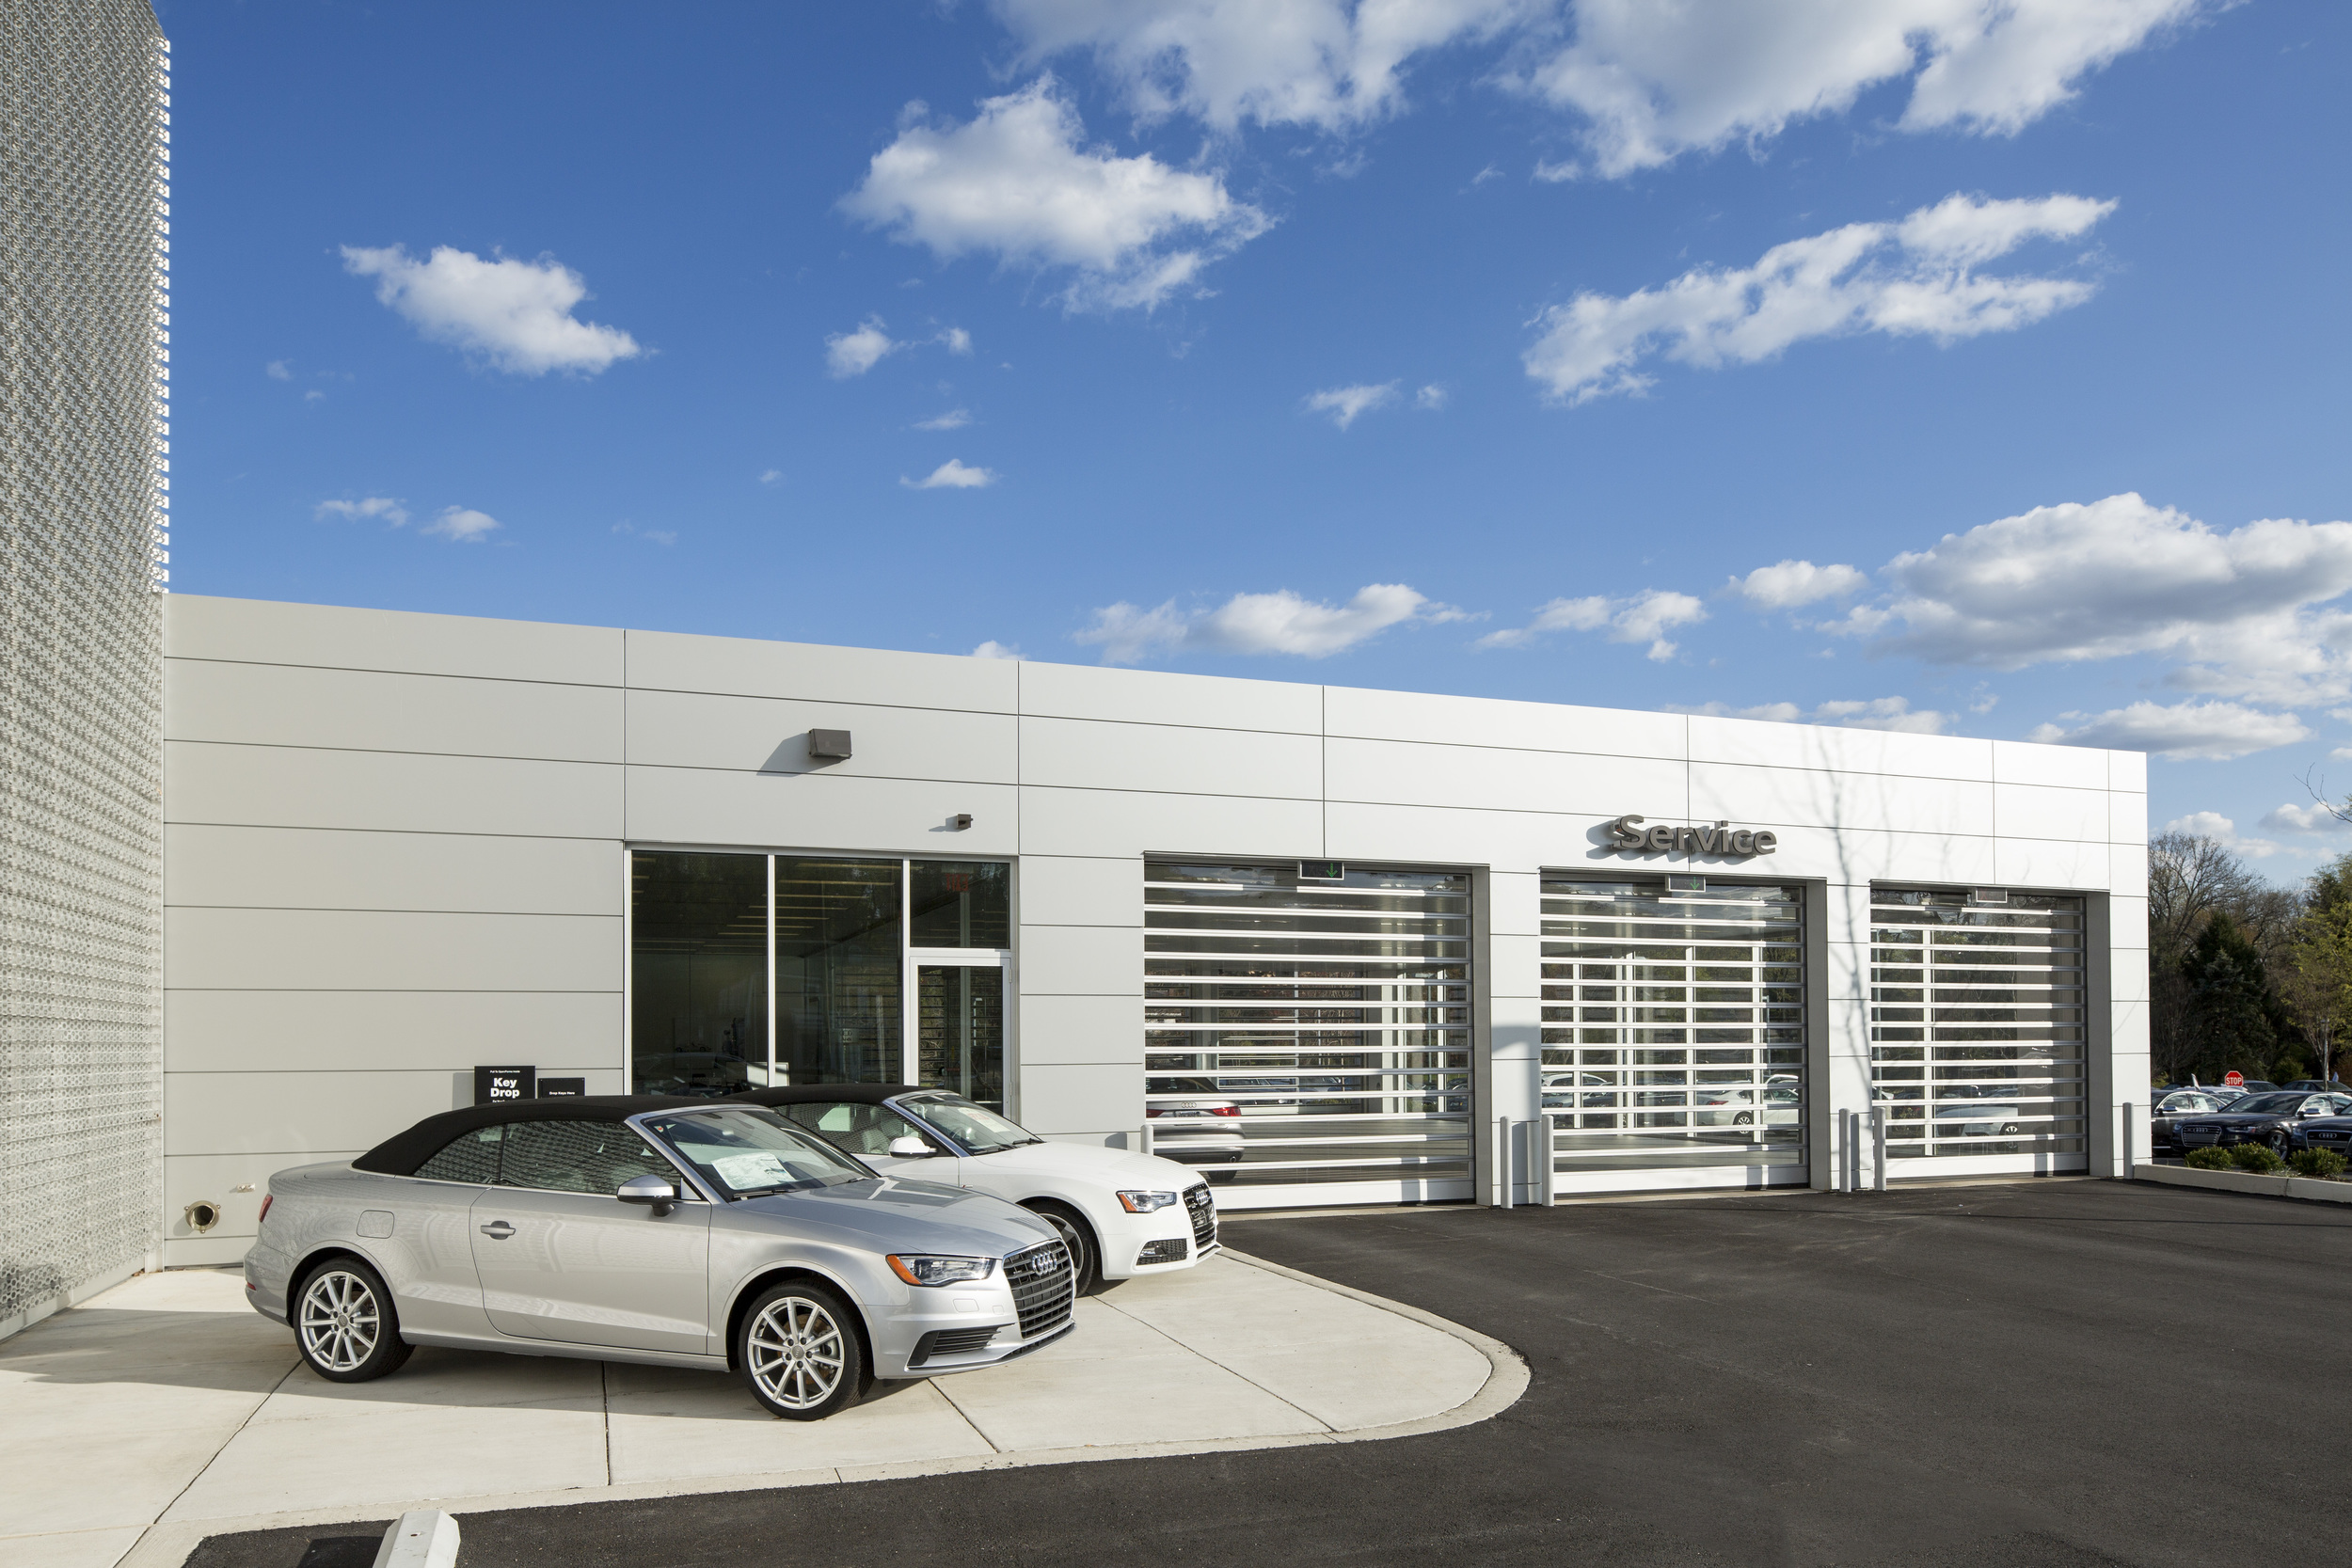 The Devon Audi dealership has a fleet of 55 loaner cars — one way they go the extra mile to keep their upscale customers happy.